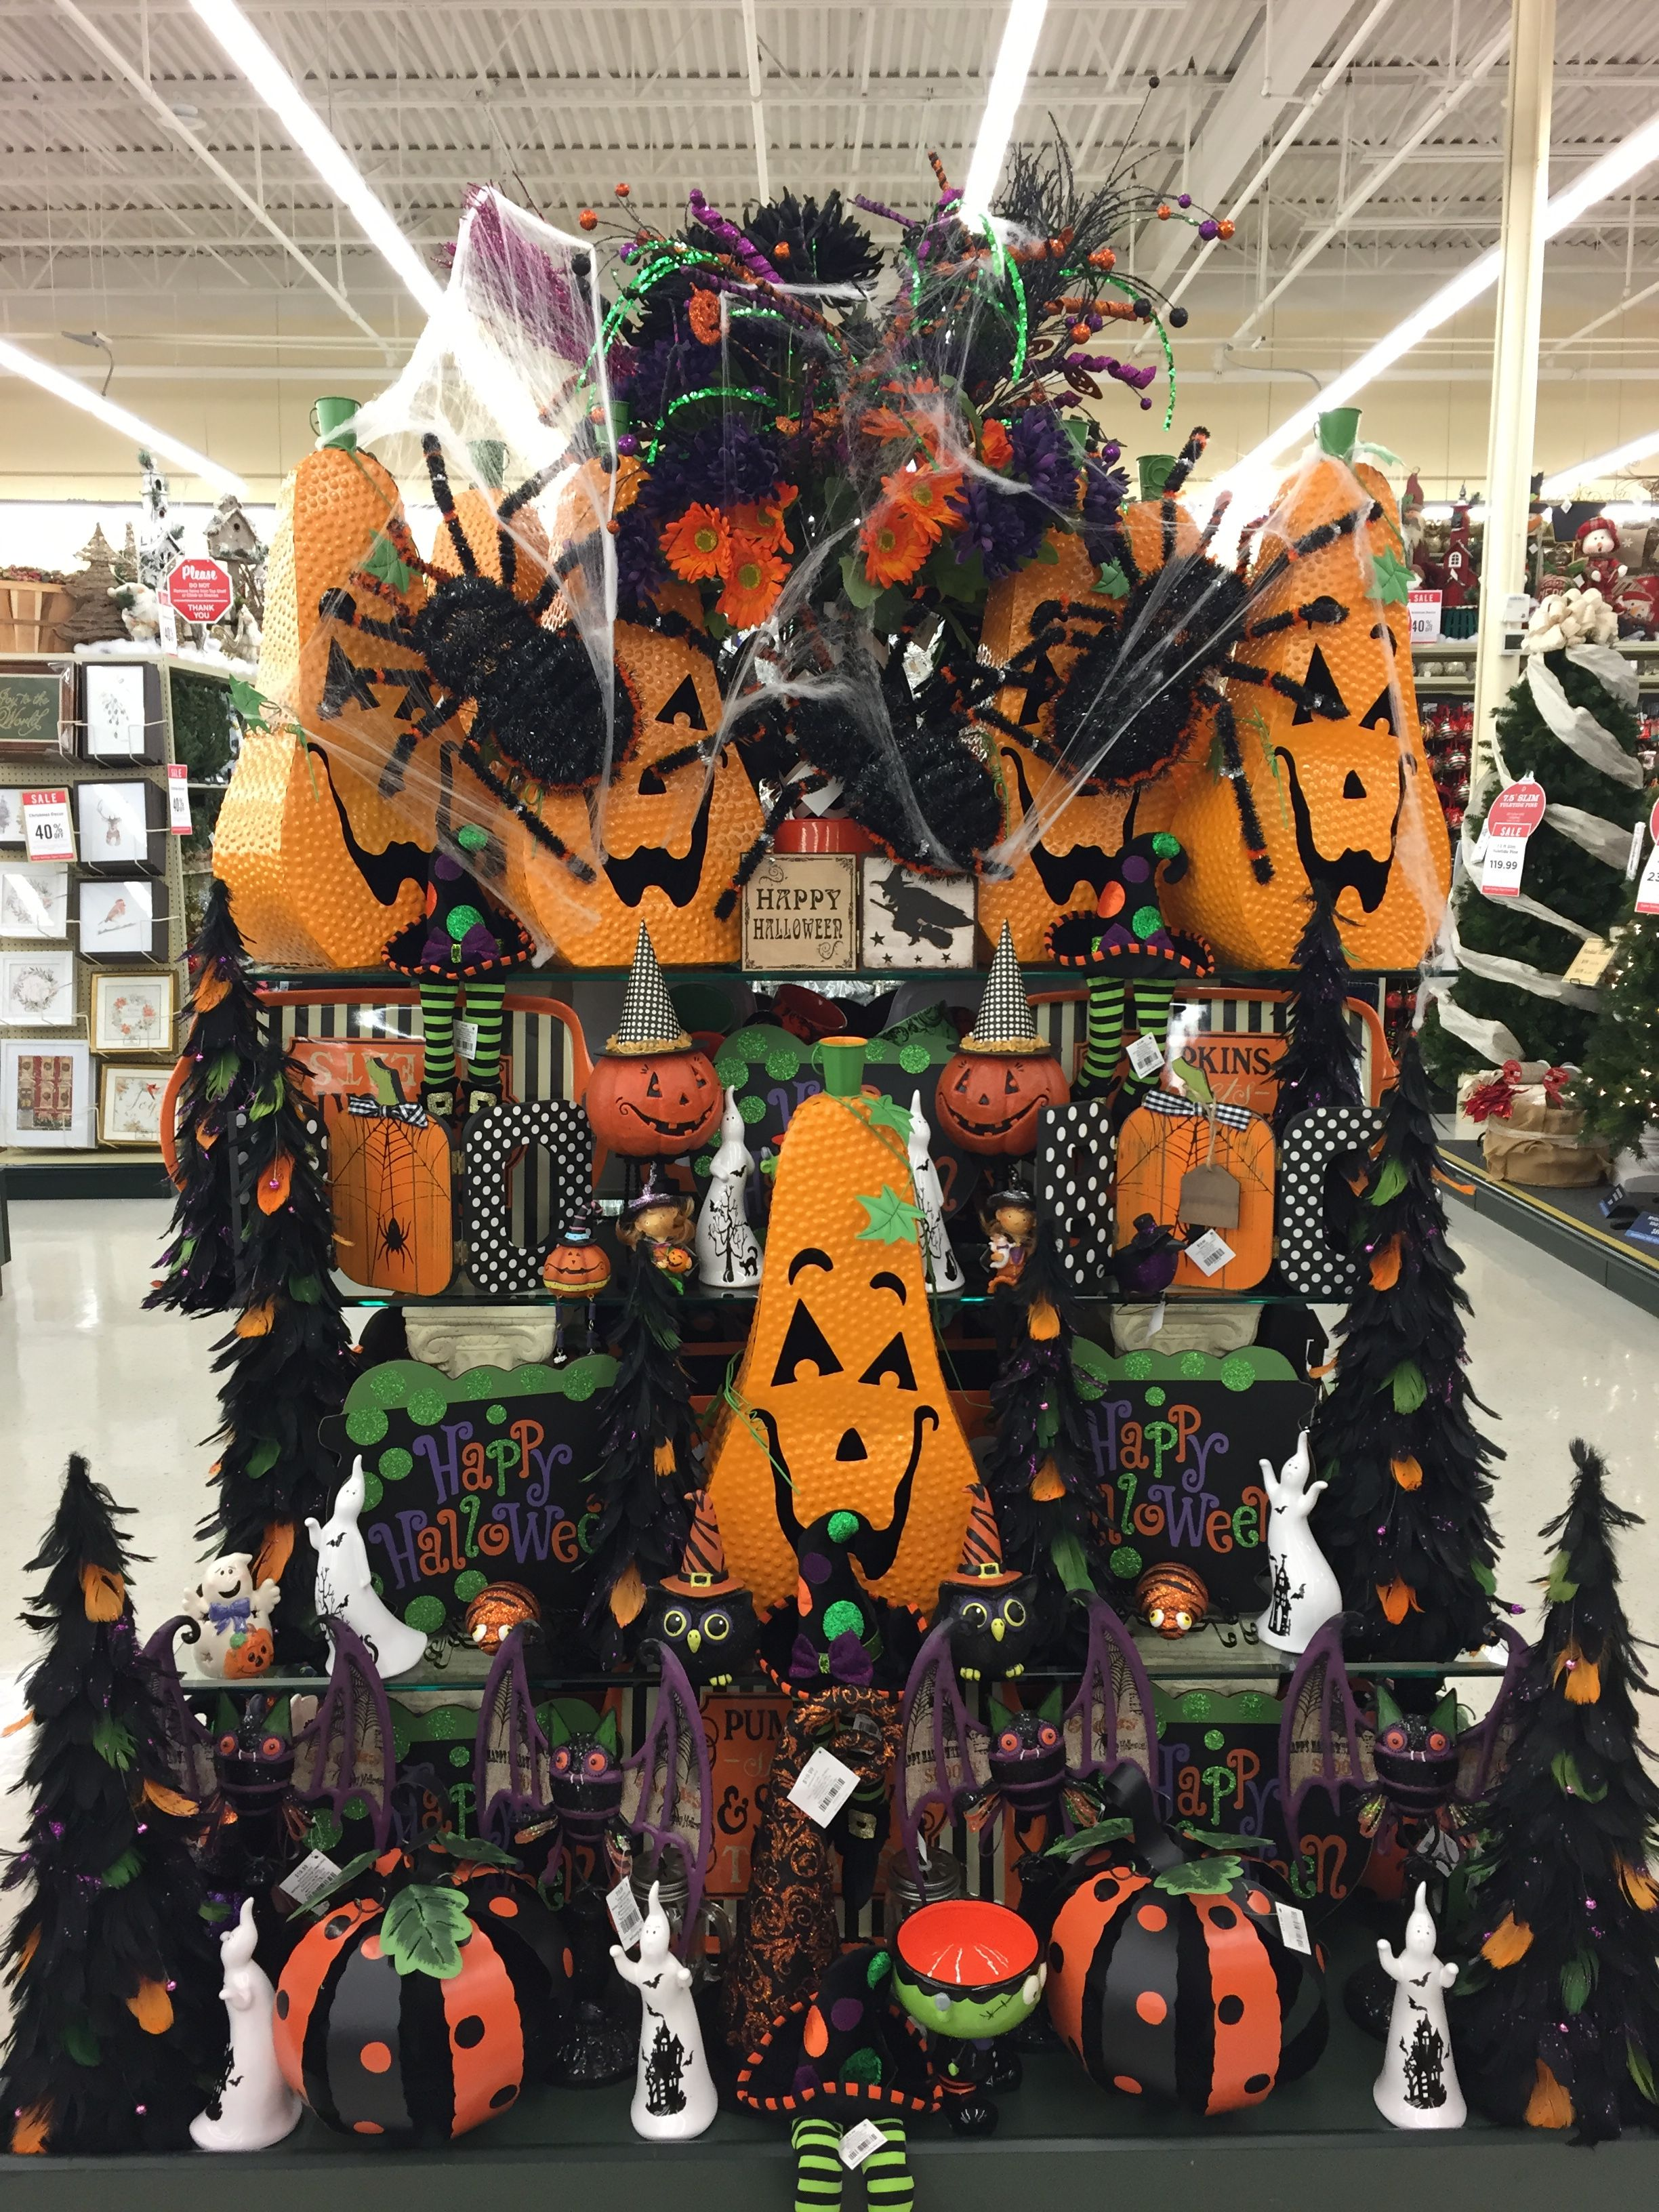 Hobby Lobby Halloween Decorations 2019.Pin By Natalie Duckworth Wright On Hobby Lobby Merchandising